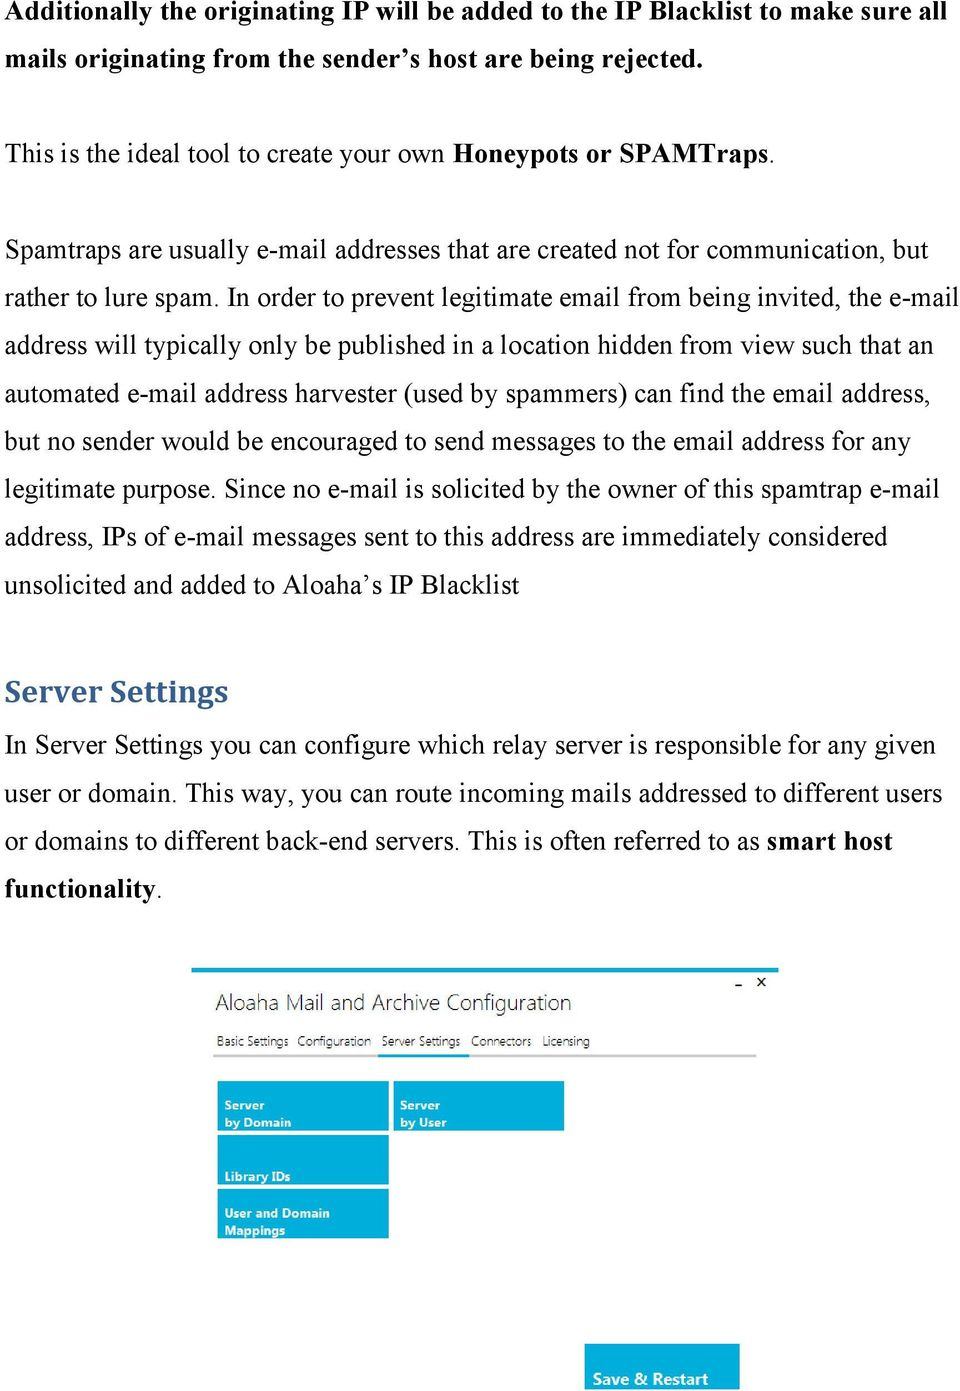 In order to prevent legitimate email from being invited, the e-mail address will typically only be published in a location hidden from view such that an automated e-mail address harvester (used by